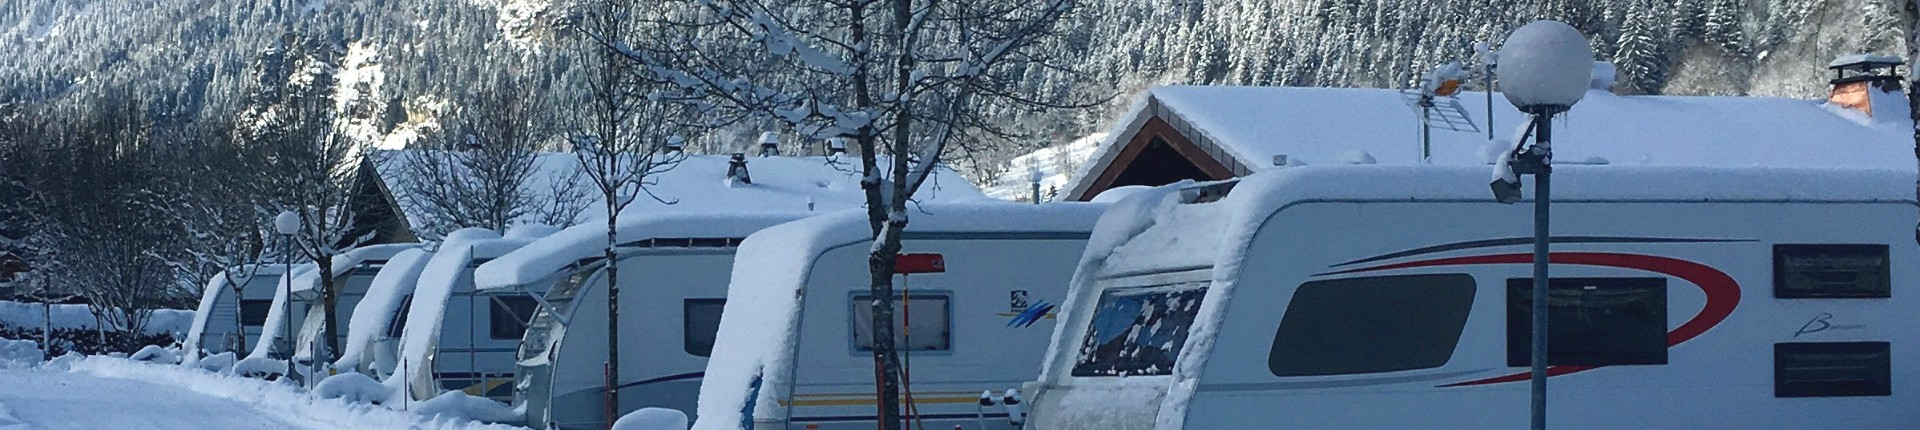 camping-l-oustalet-chatel-hiver-1-134